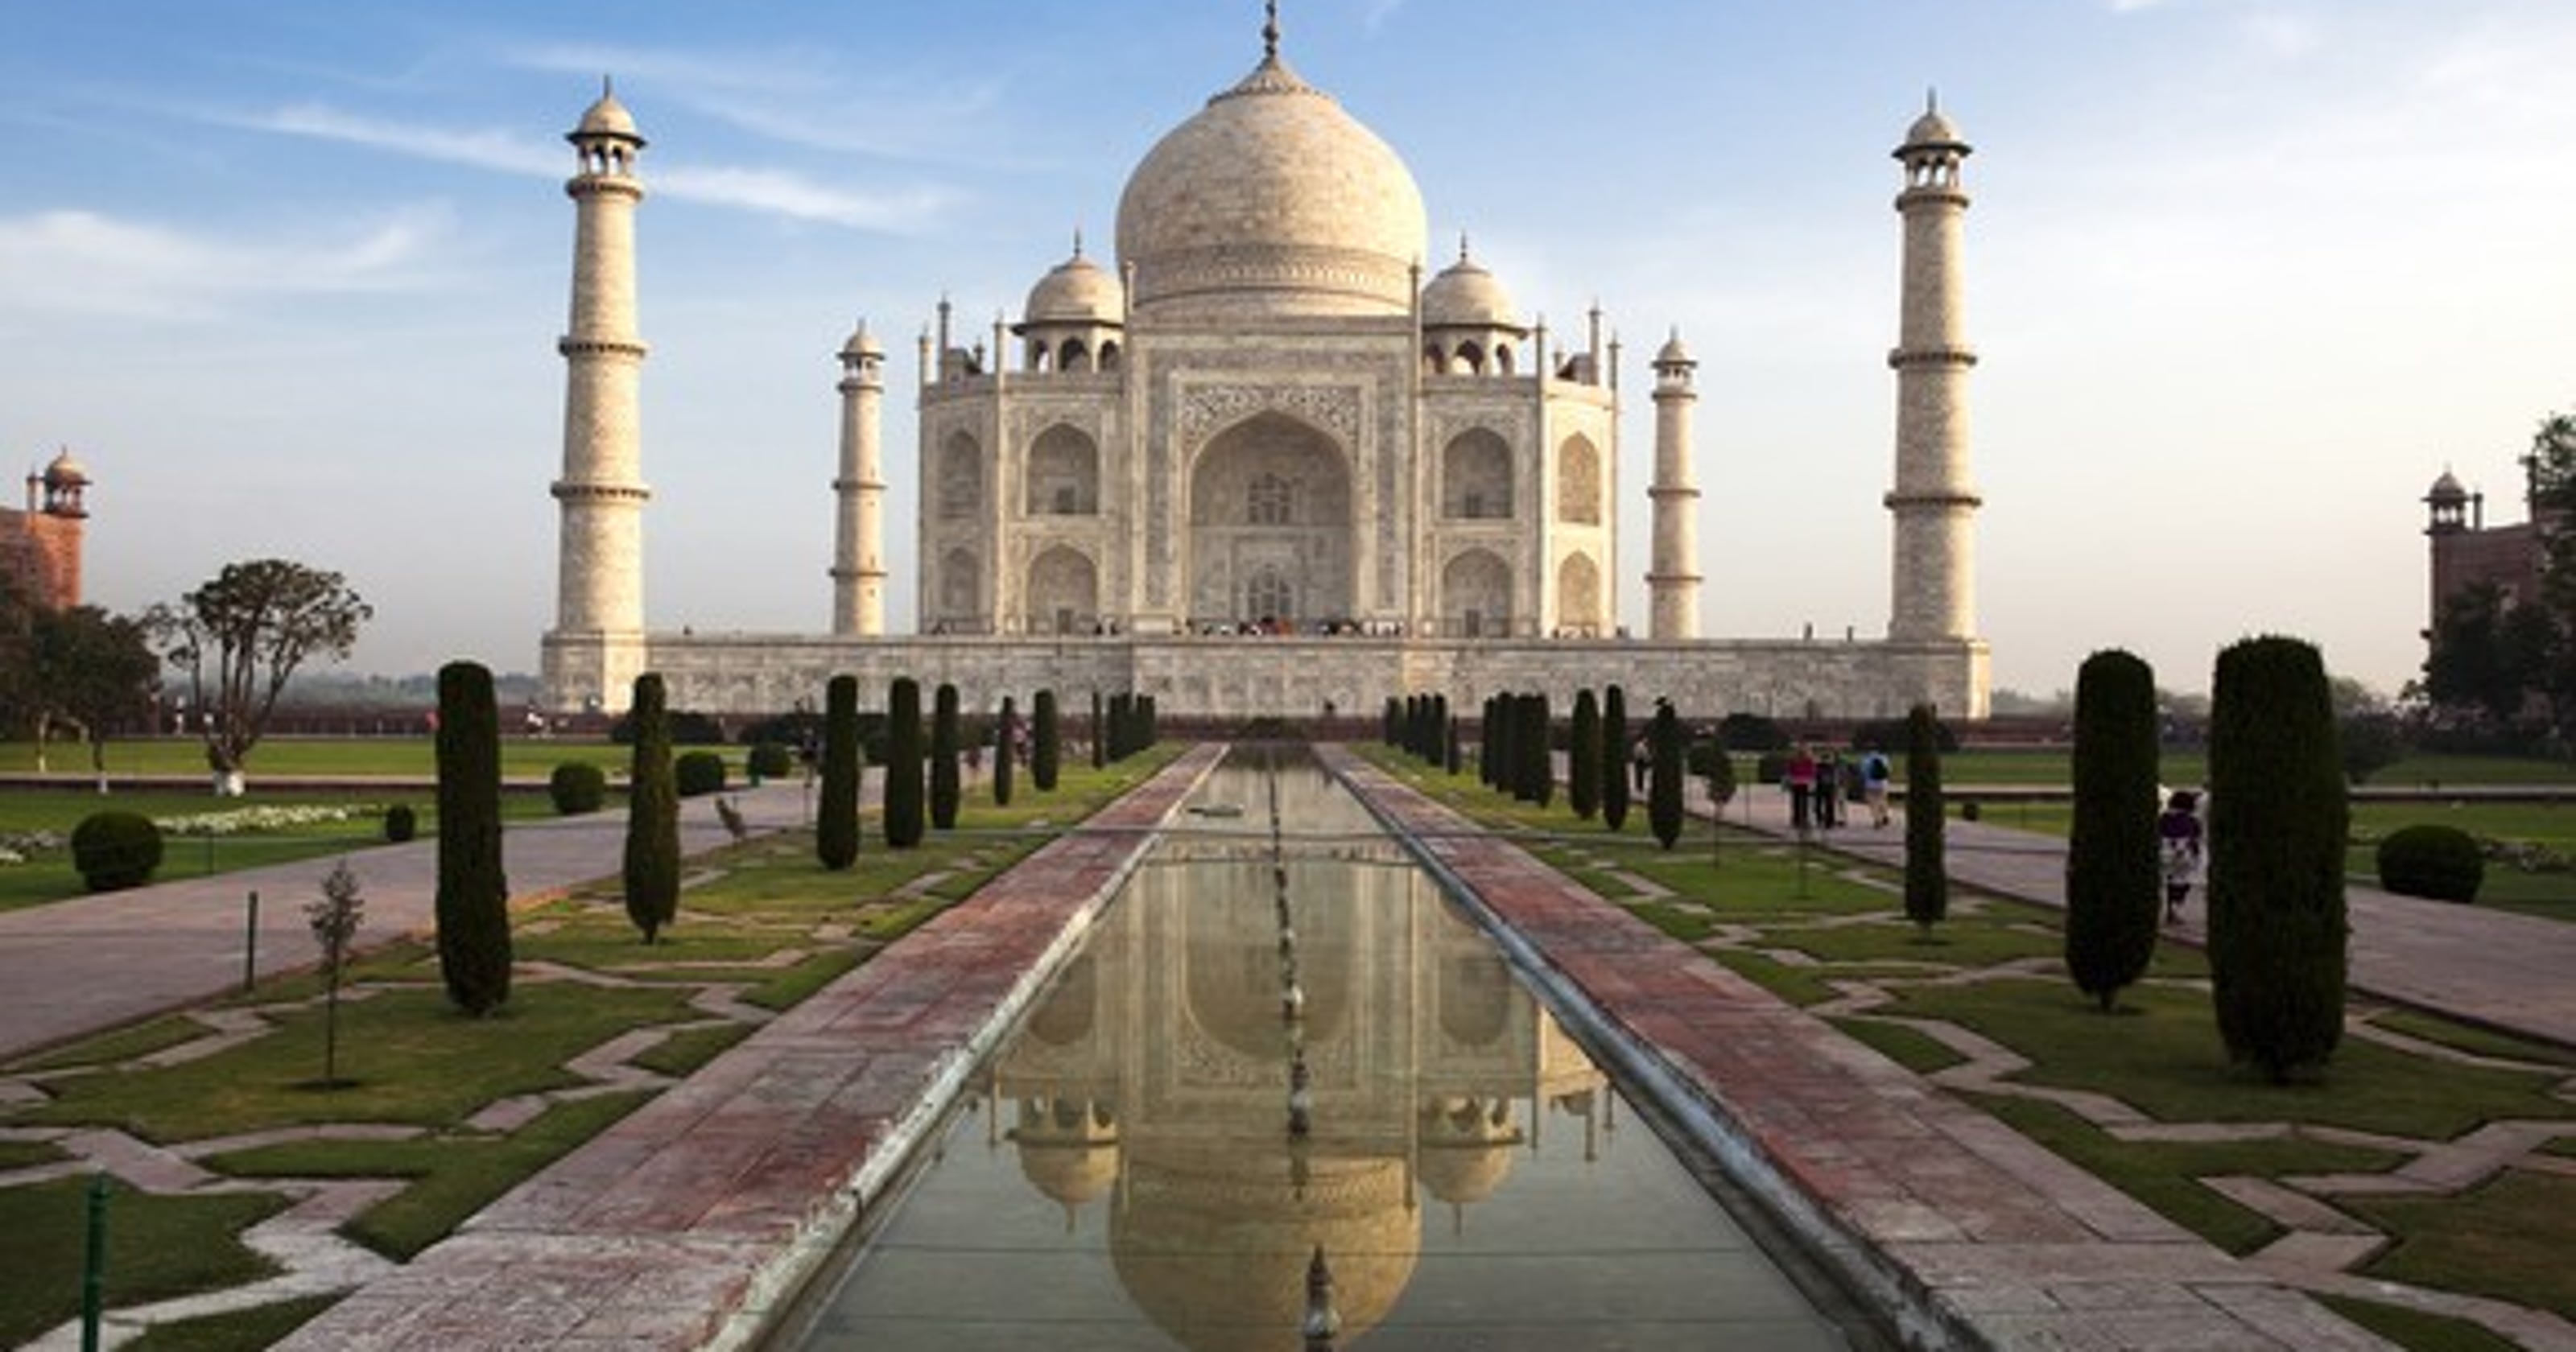 speech on taj mahal in english